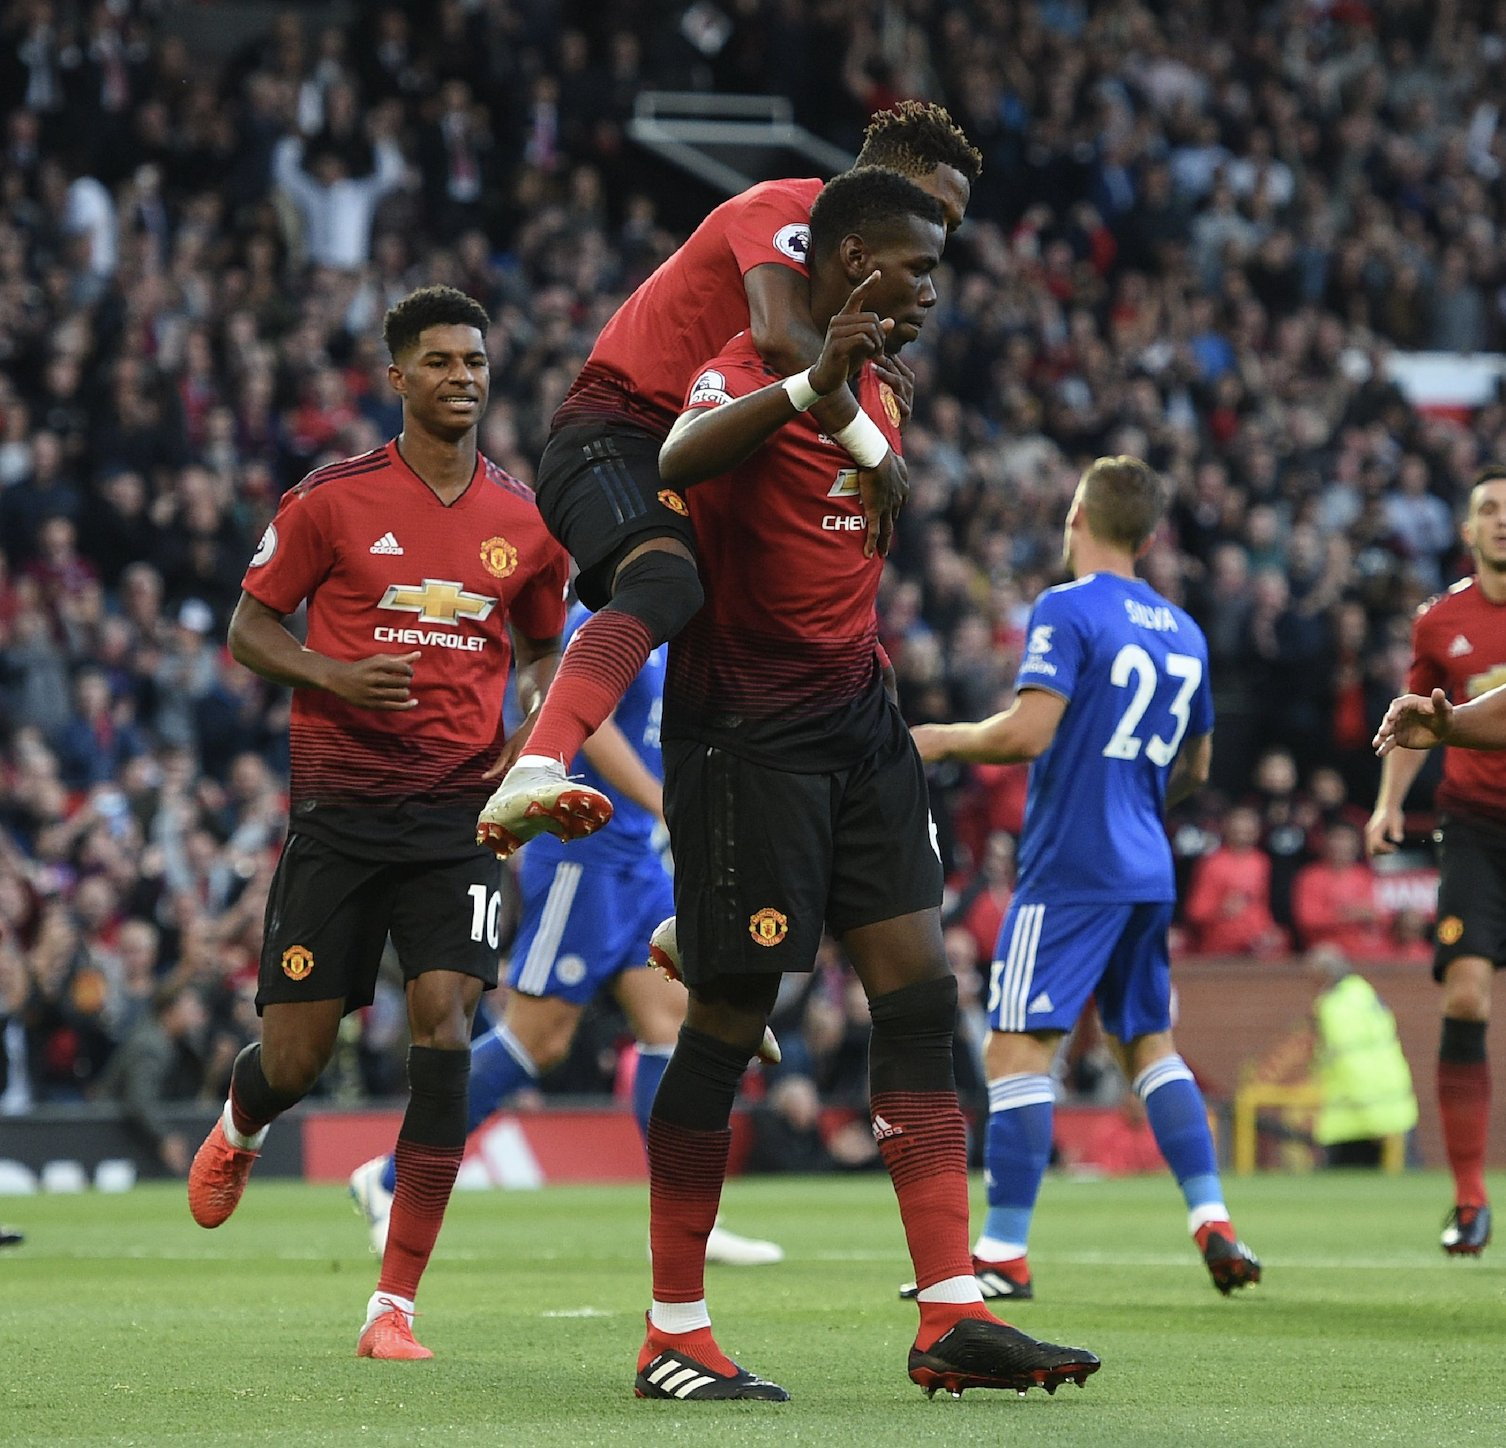 Which Premier League Team Will Qualify for the Champions